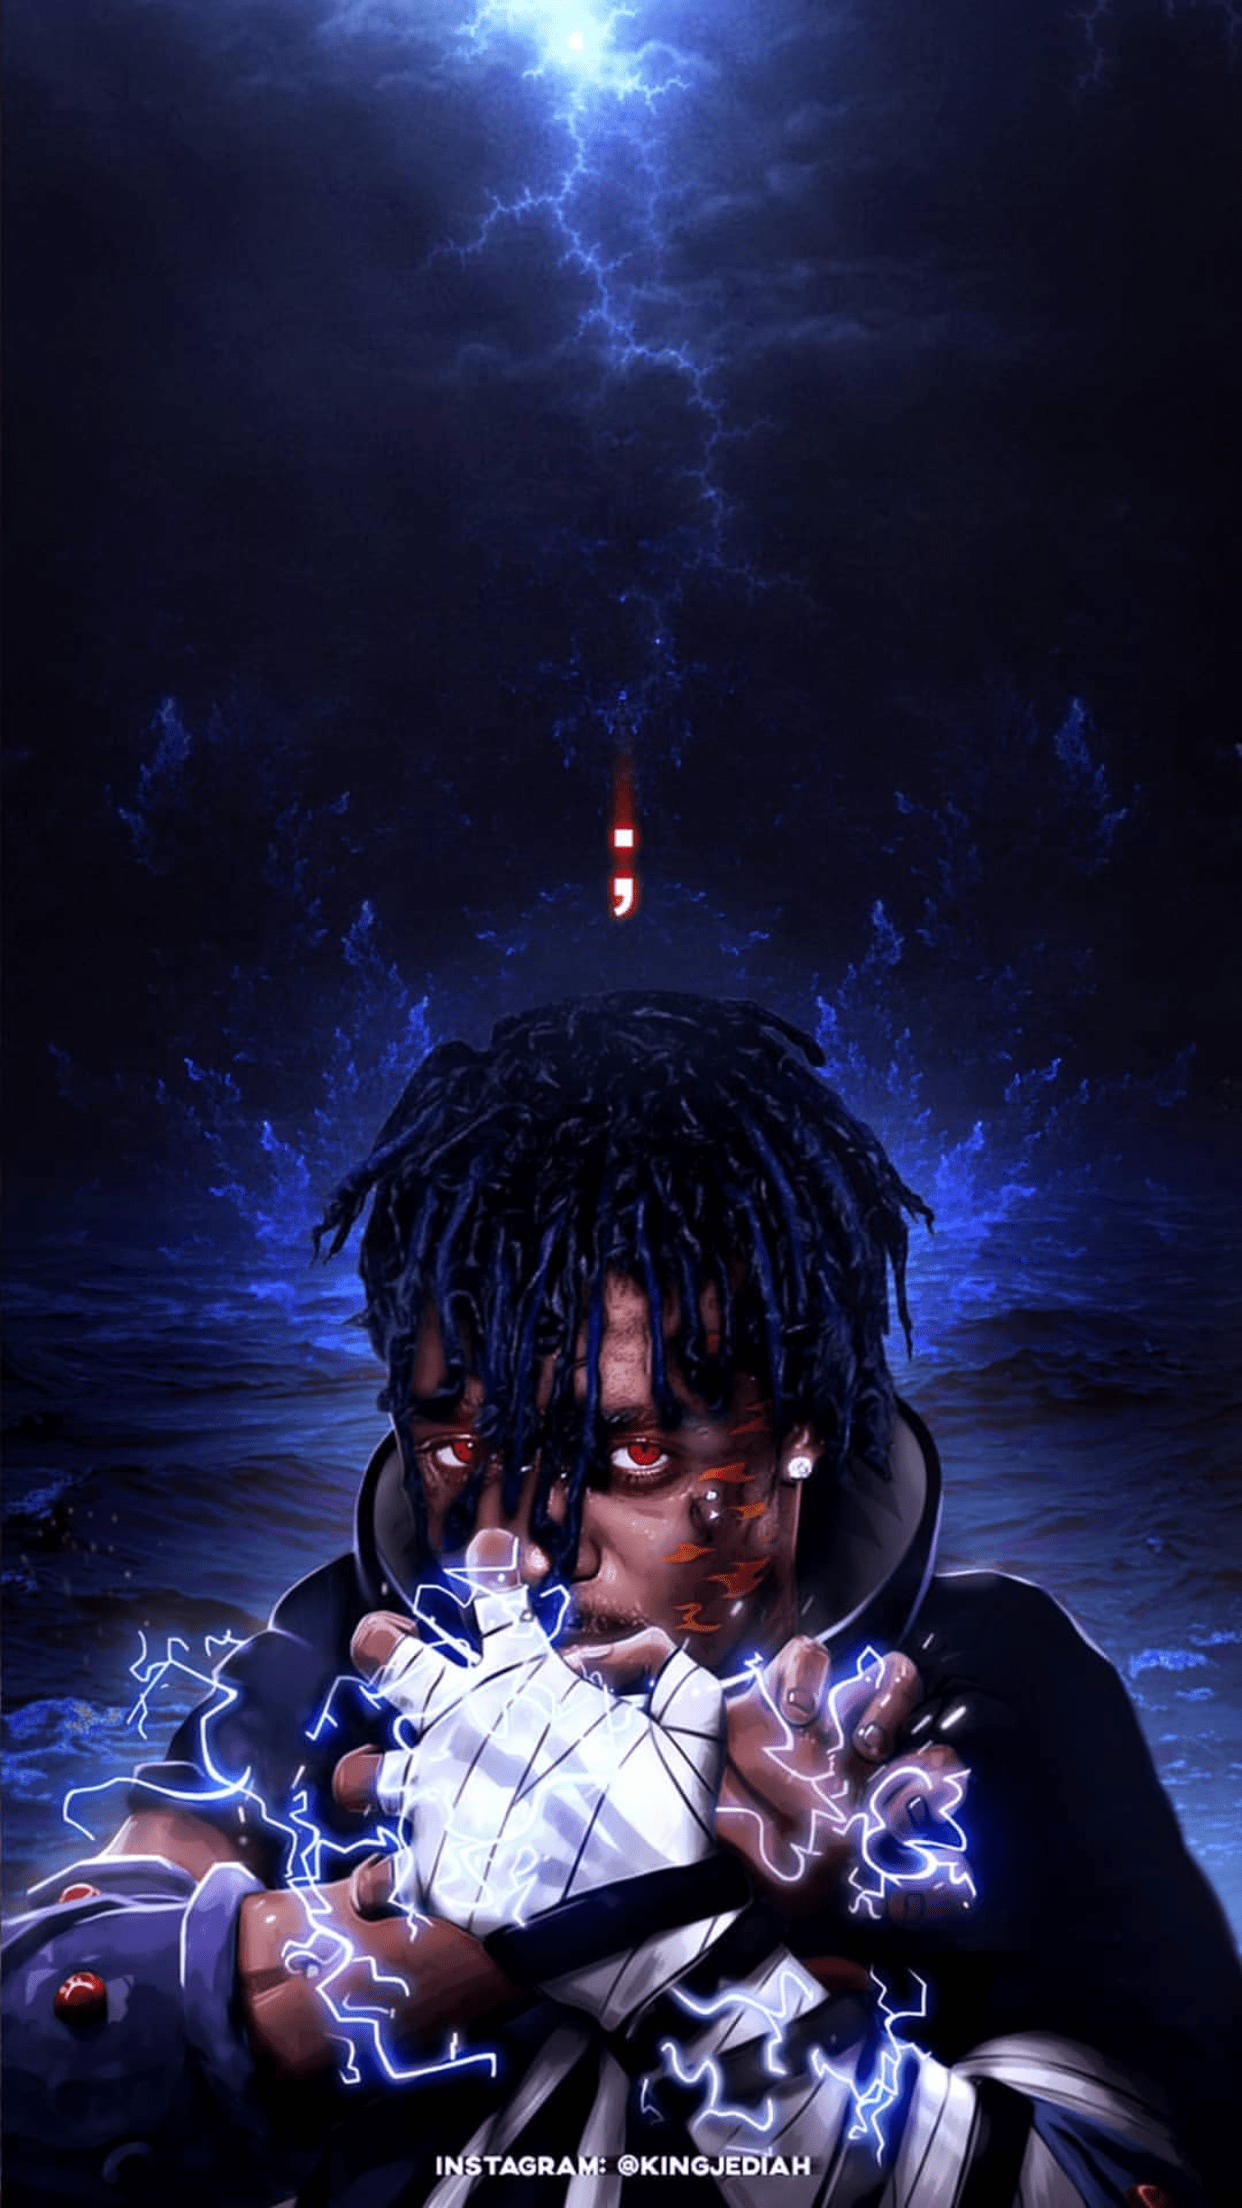 Lil Uzi Vert Wallpaper Iphone Posted By Ethan Johnson